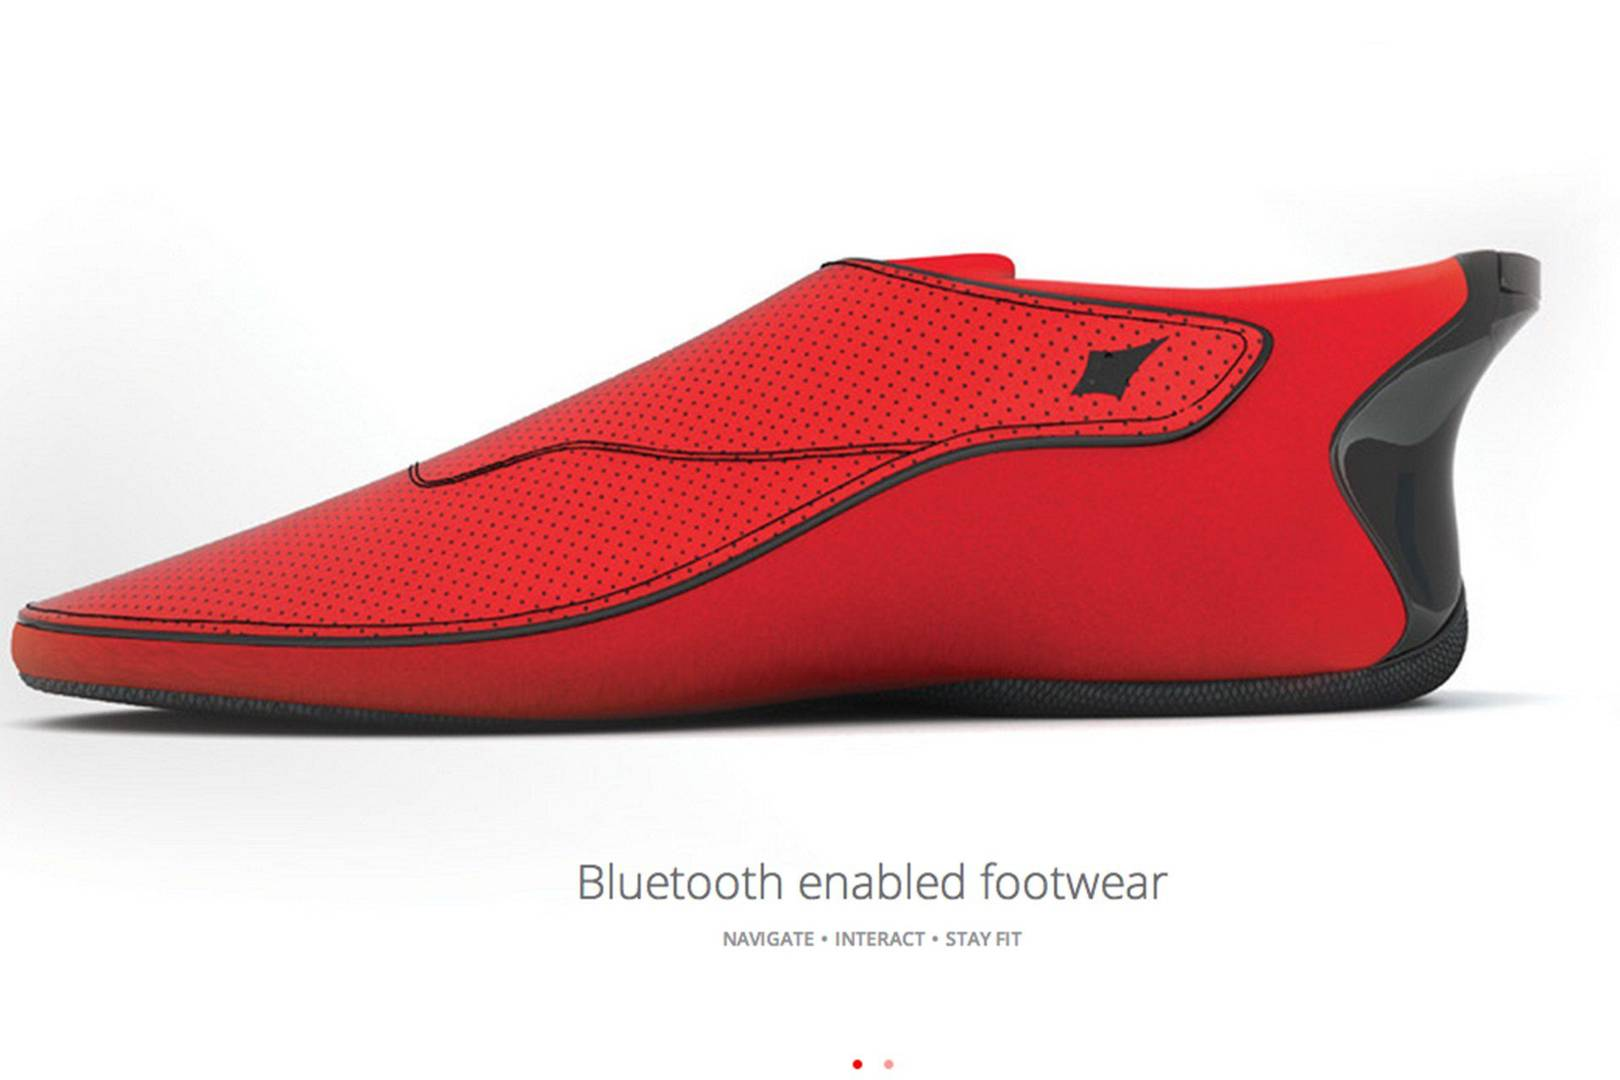 Smart shoes guide runners and the blind with vibrations | WIRED UK